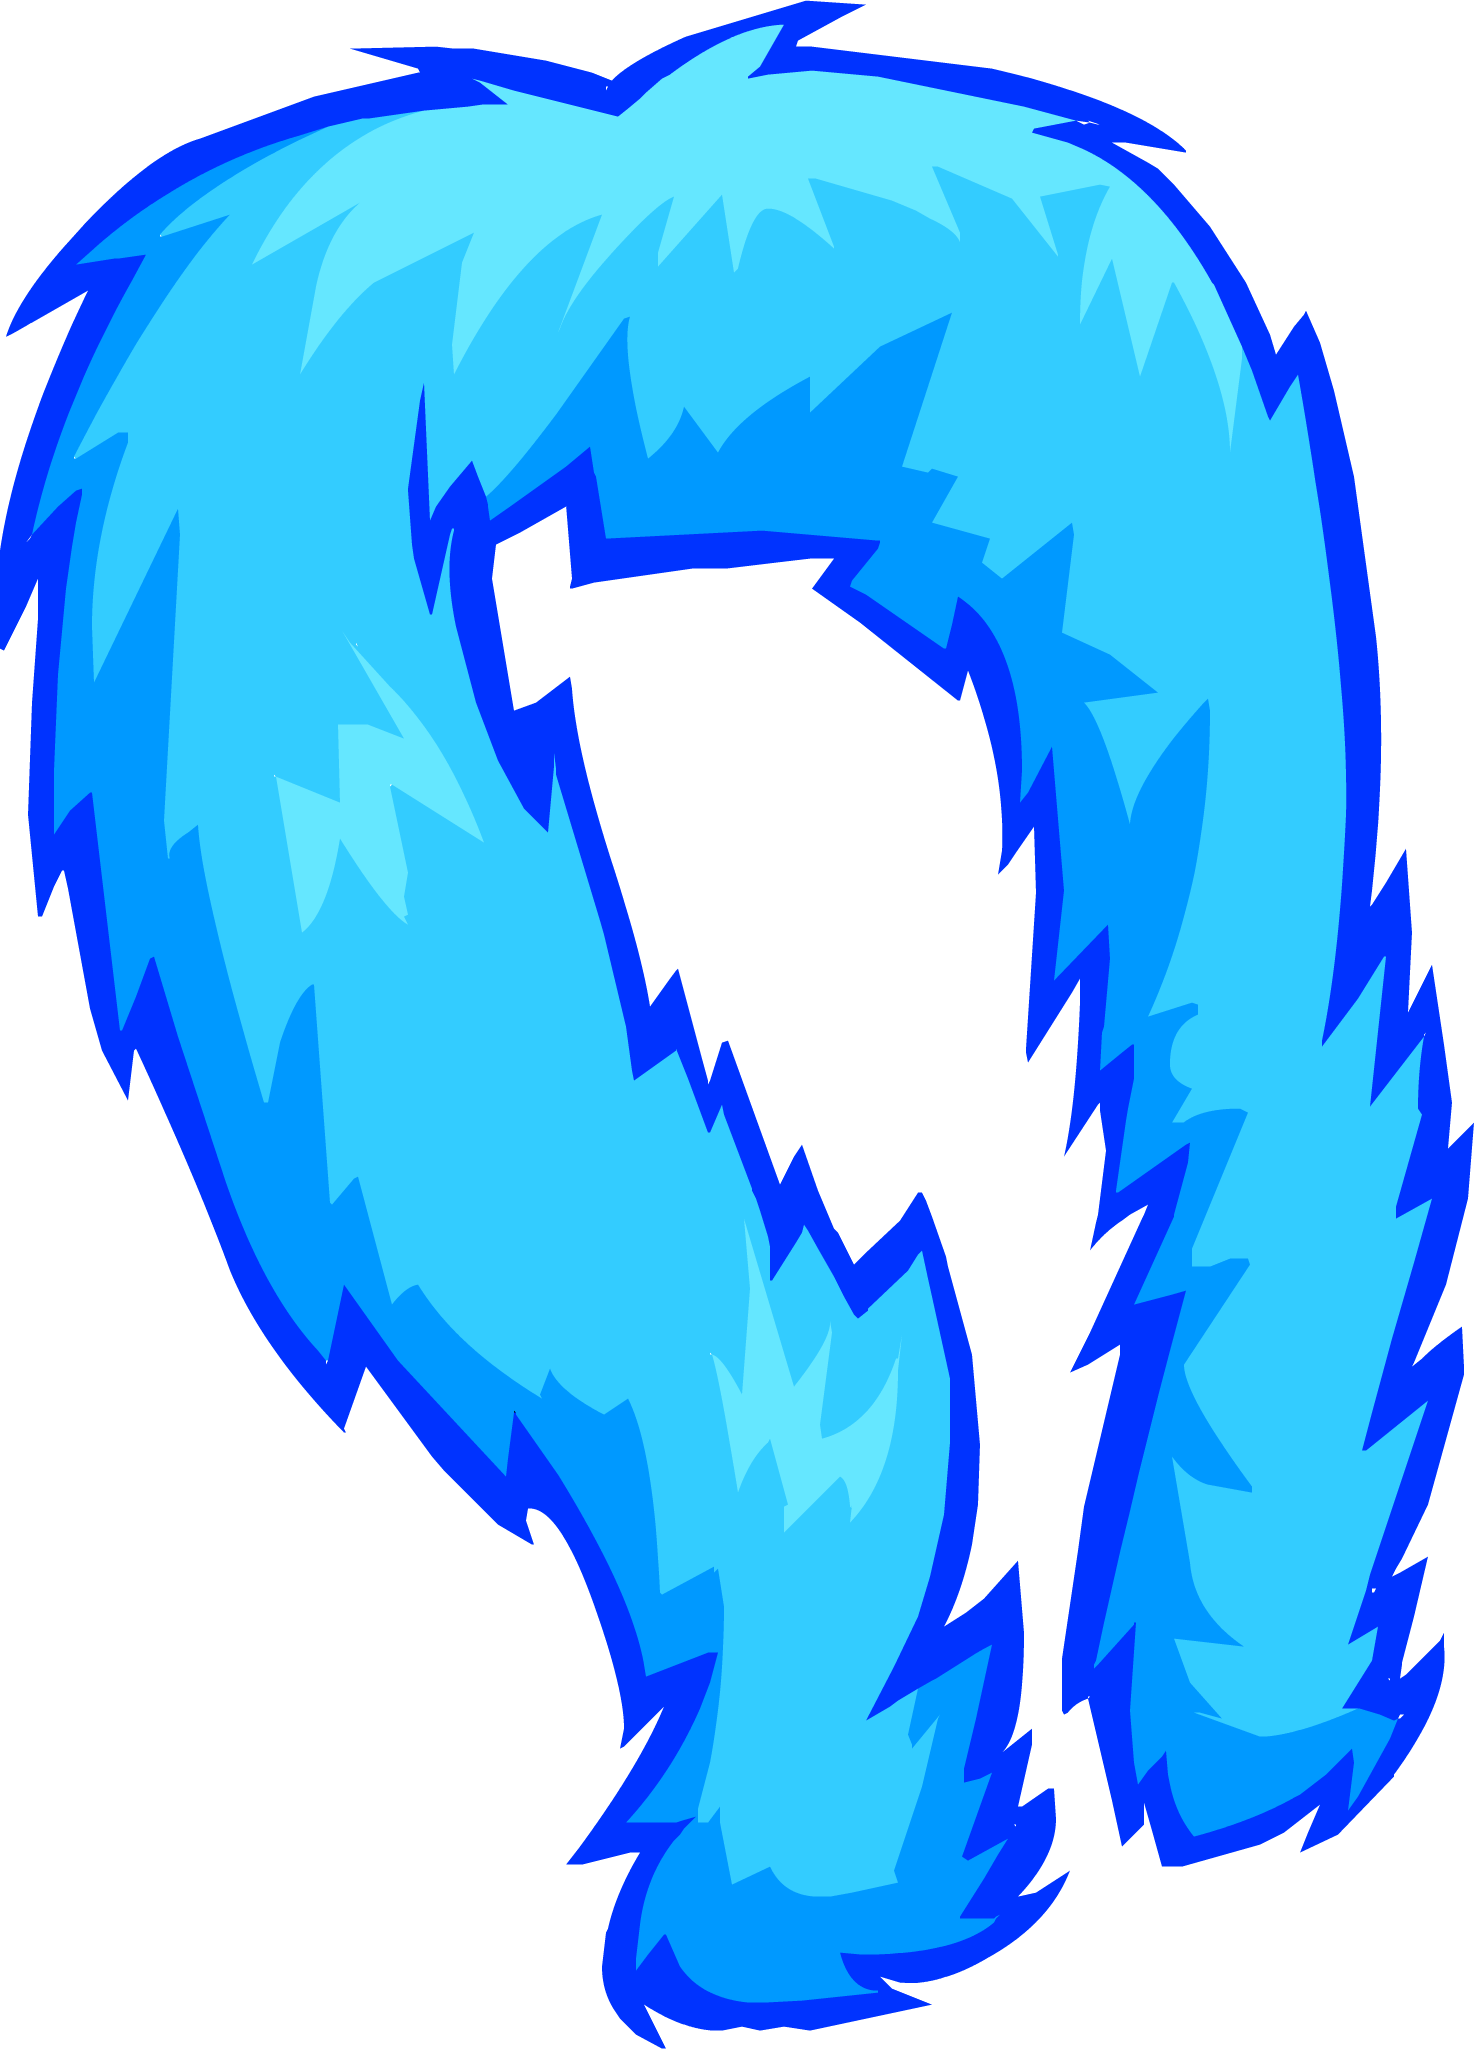 Feather clipart blue feather. Image boa icon png